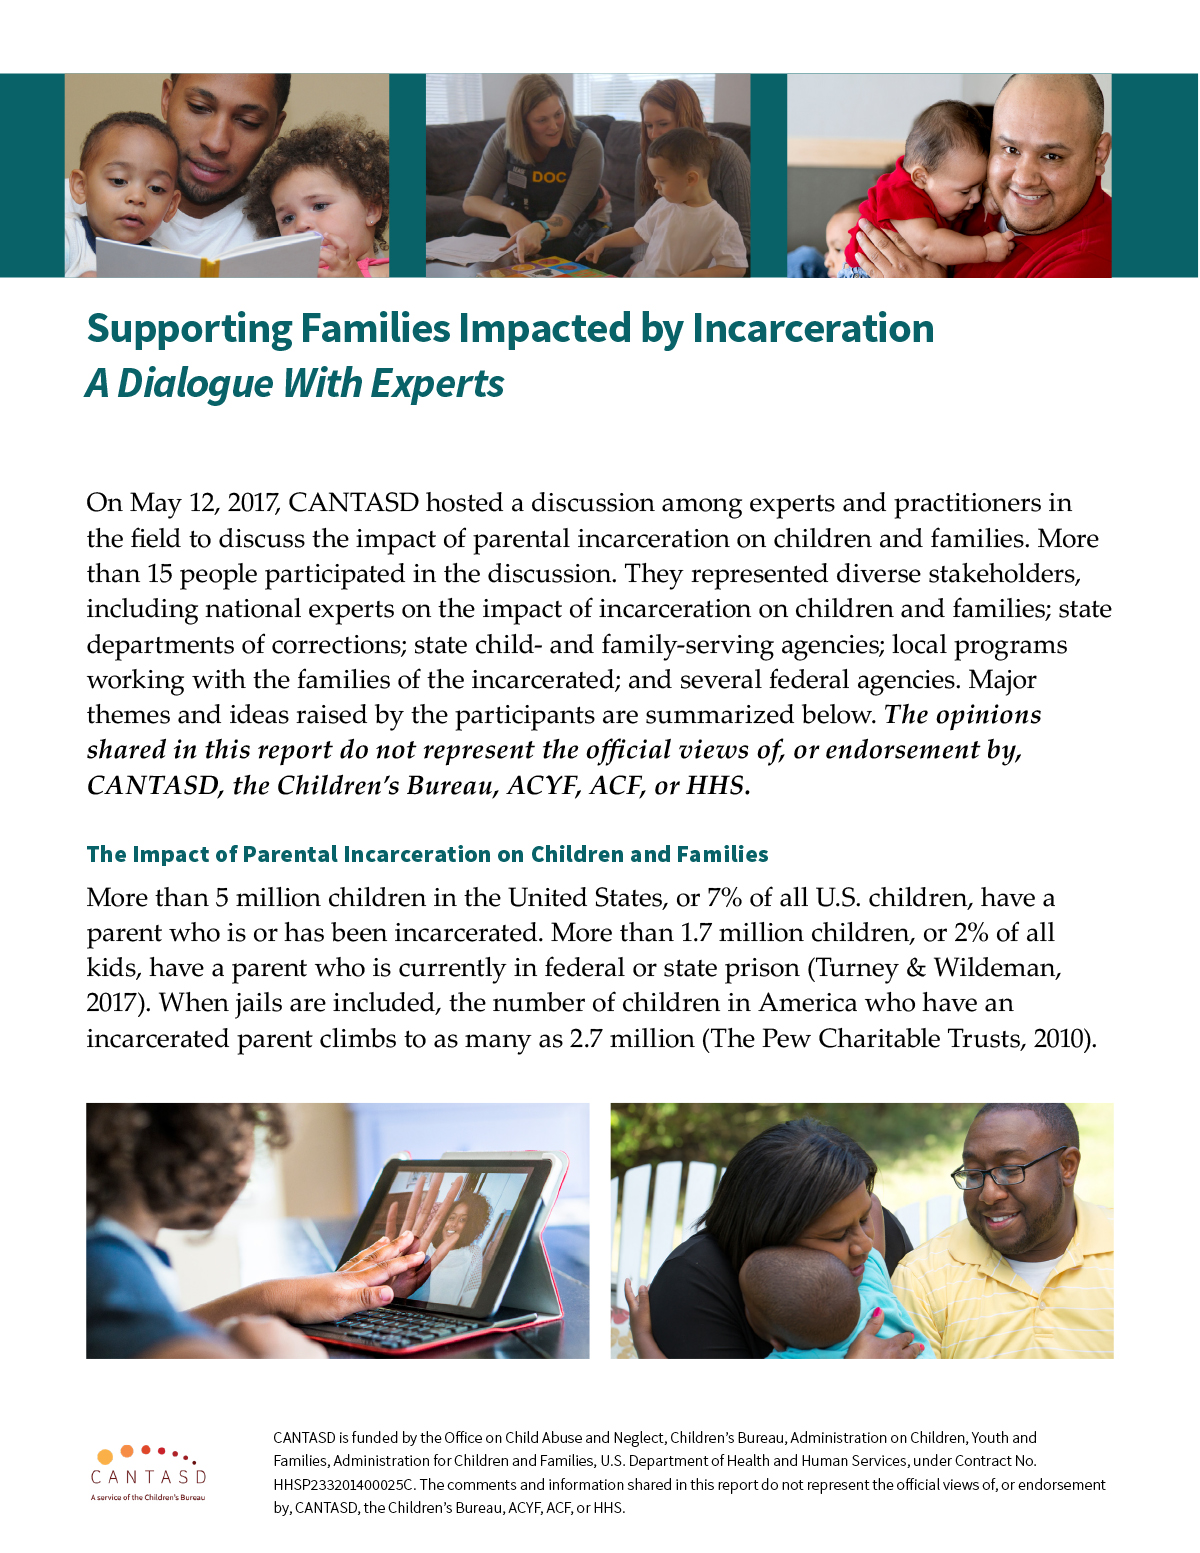 Supporting Families Impacted by Incarceration: A Dialogue with Experts